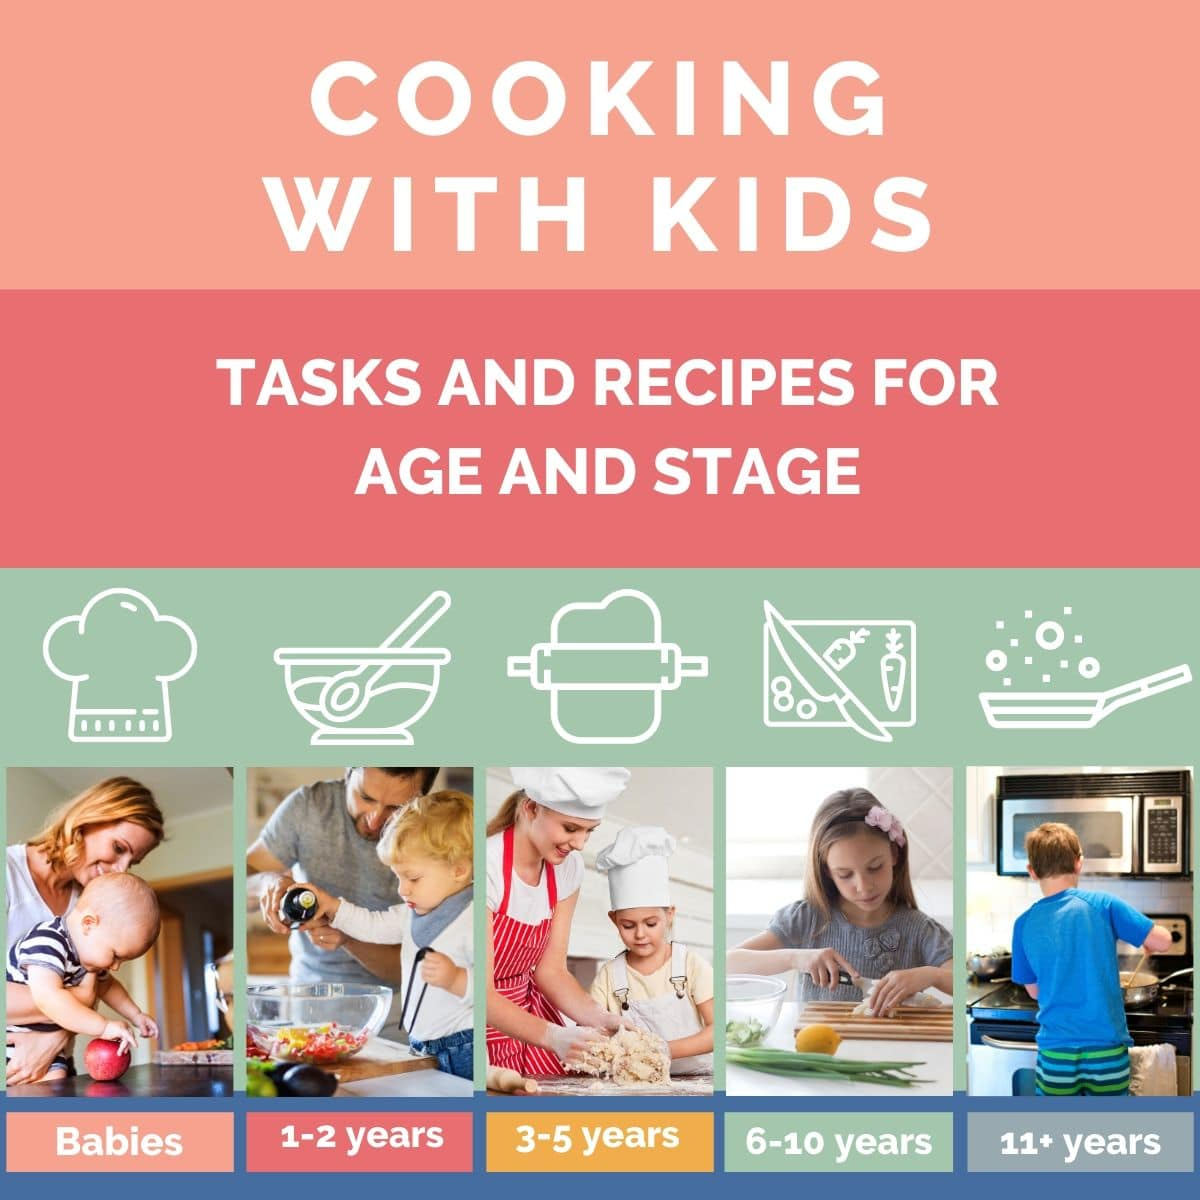 Cooking with Kids Image Featuring Baby to Teen Photos and Cooking Symbols